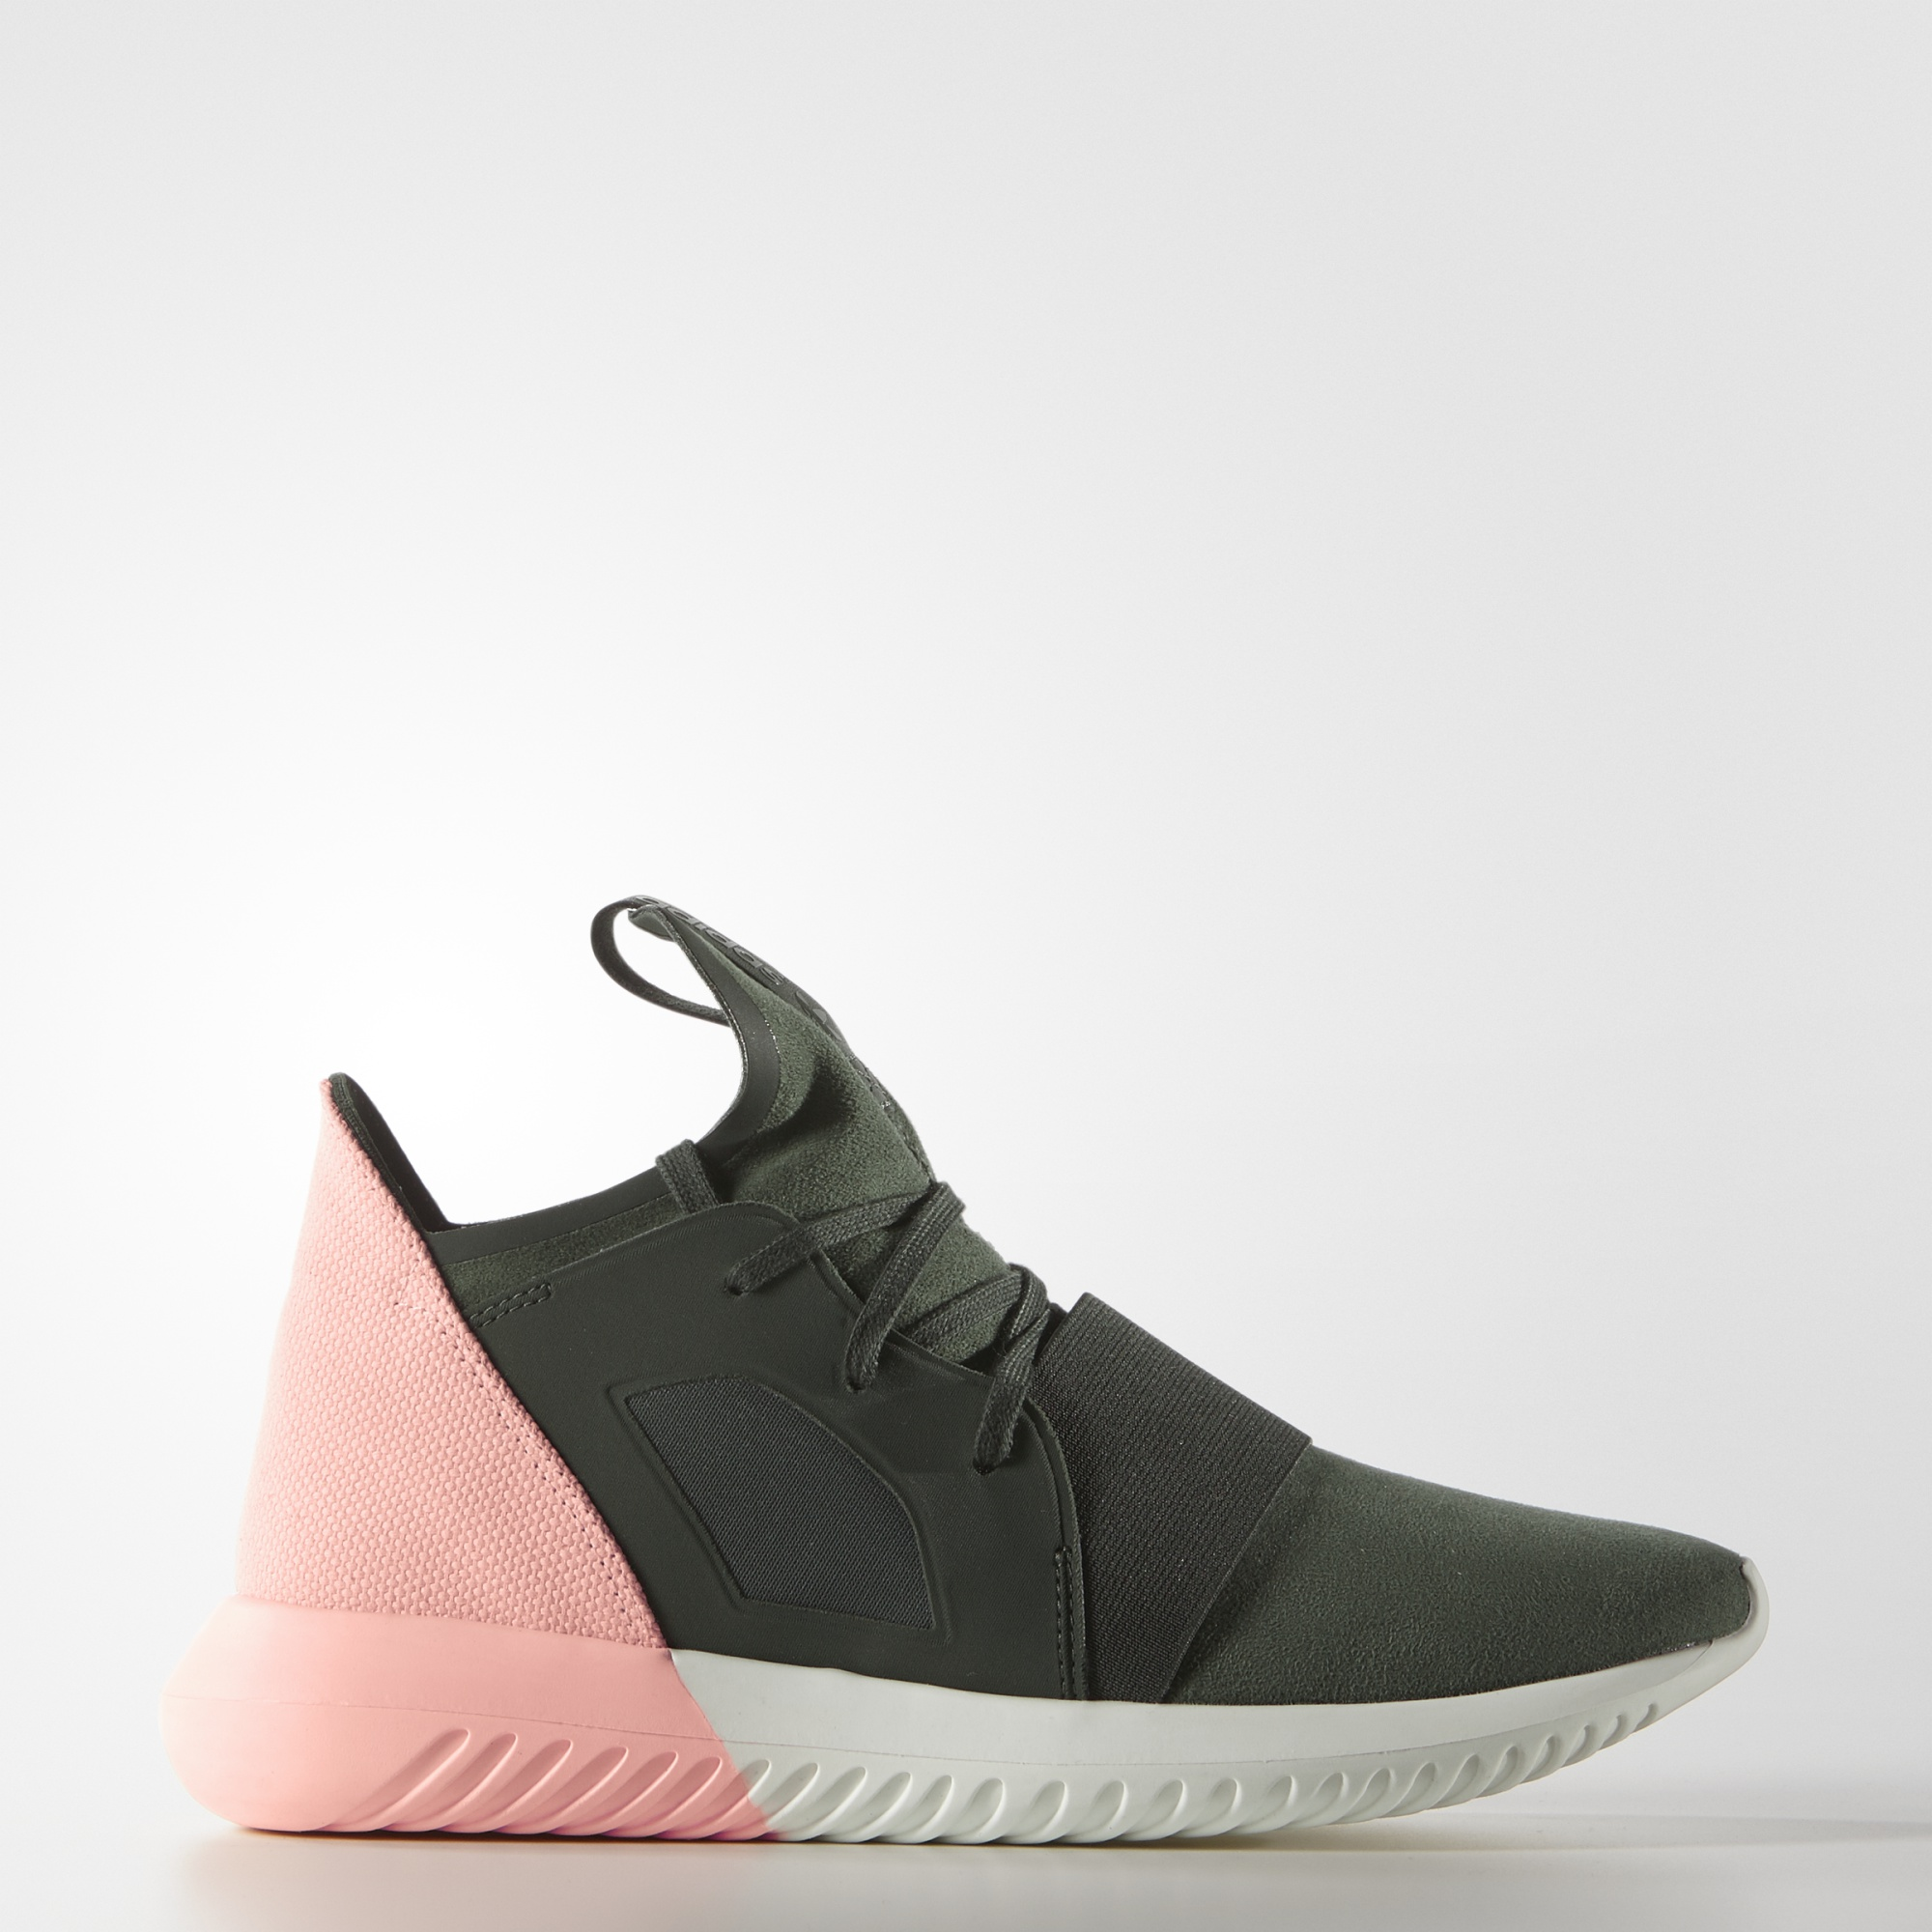 Buy cheap Online adidas tubular women red, Fine Shoes Discount